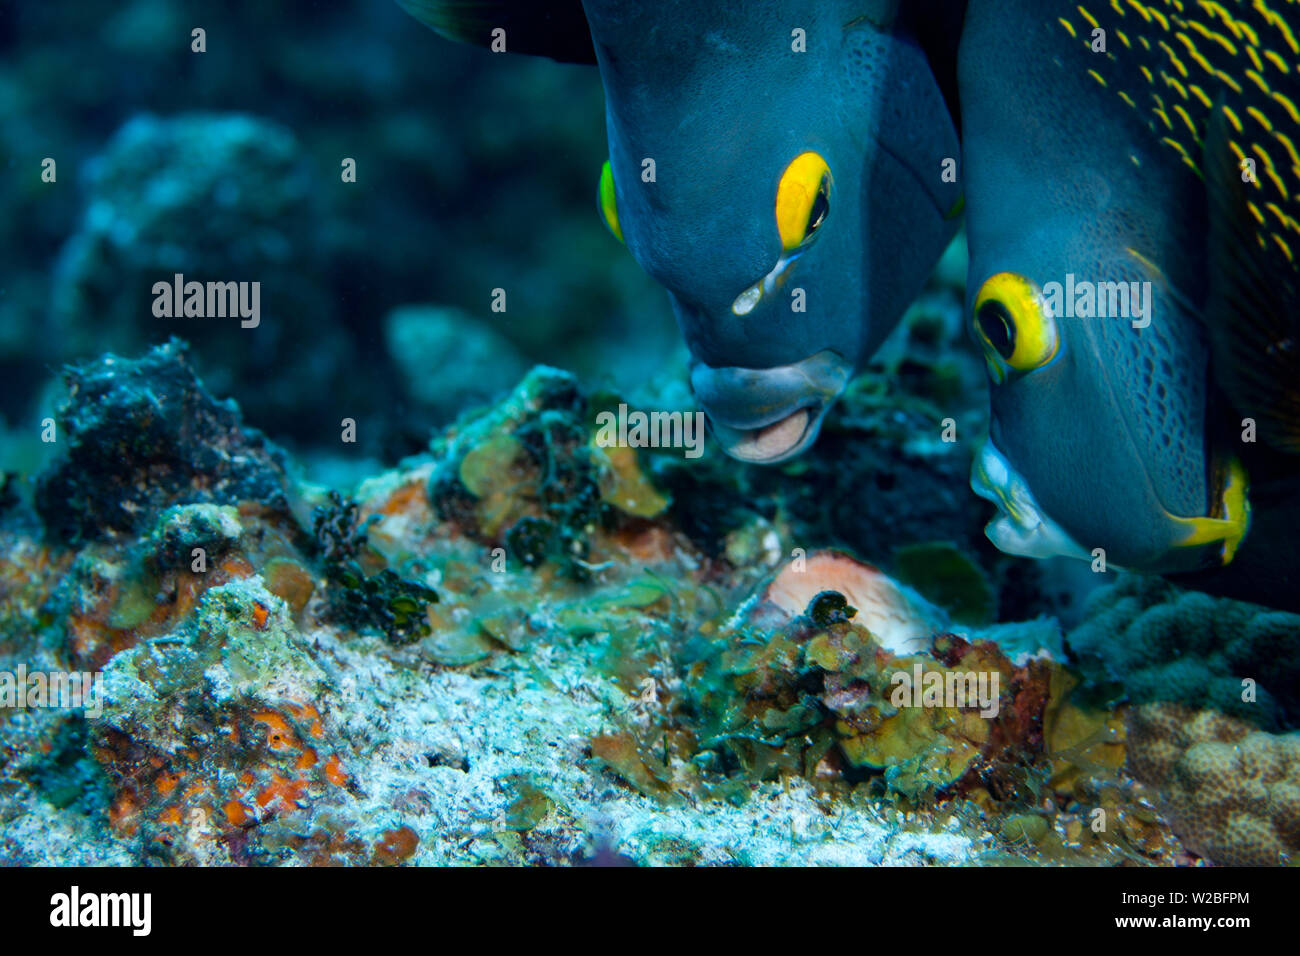 Beautiful French Angelfish searching for food on a coral reef in the Caribbean, Providenciales, Turks and Caicos Islands. Angelfish are often seen swi - Stock Image